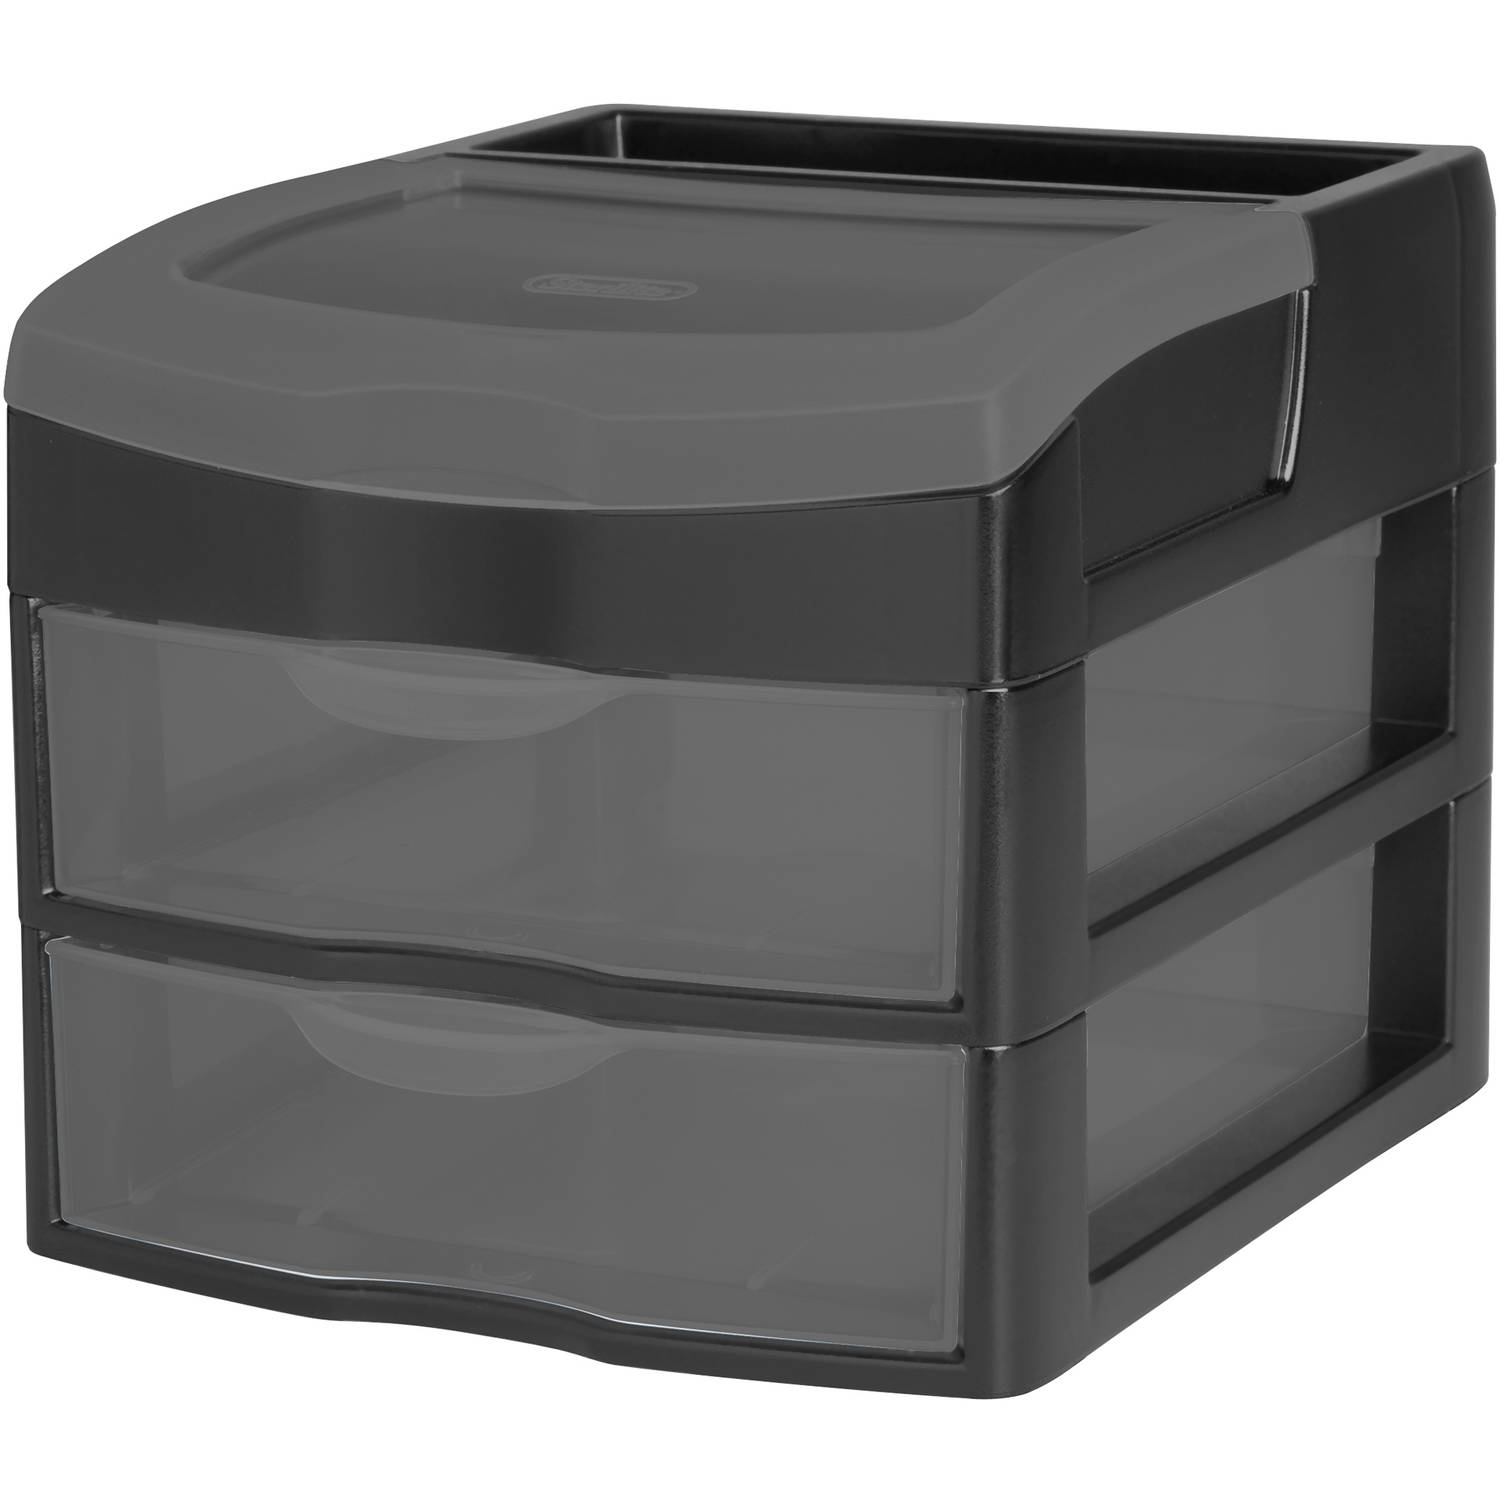 Sterilite 2-Drawer Organizer, Black Tint